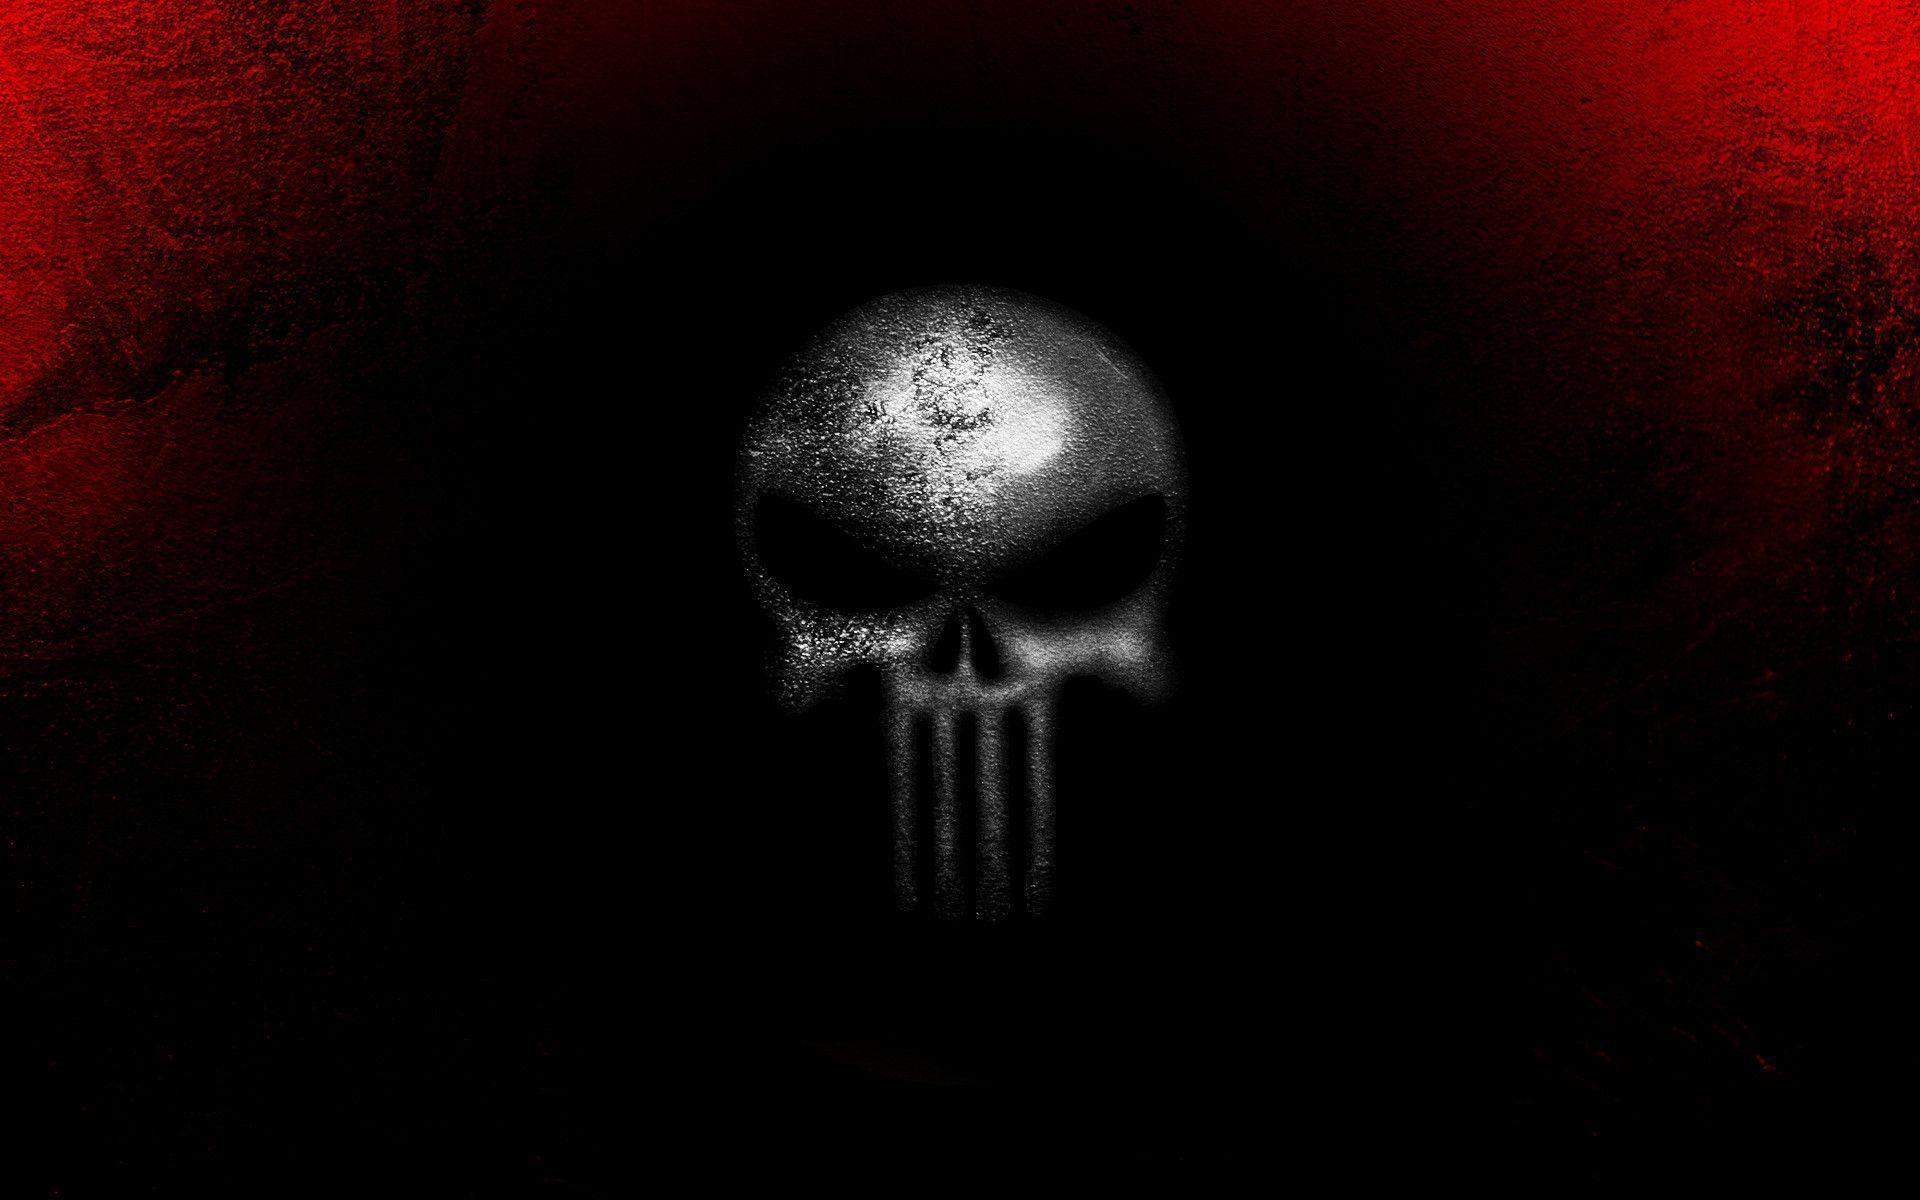 The punishers skull wallpapers wallpaper cave punisher skull hd wallpaper download hd wallpaper high voltagebd Images